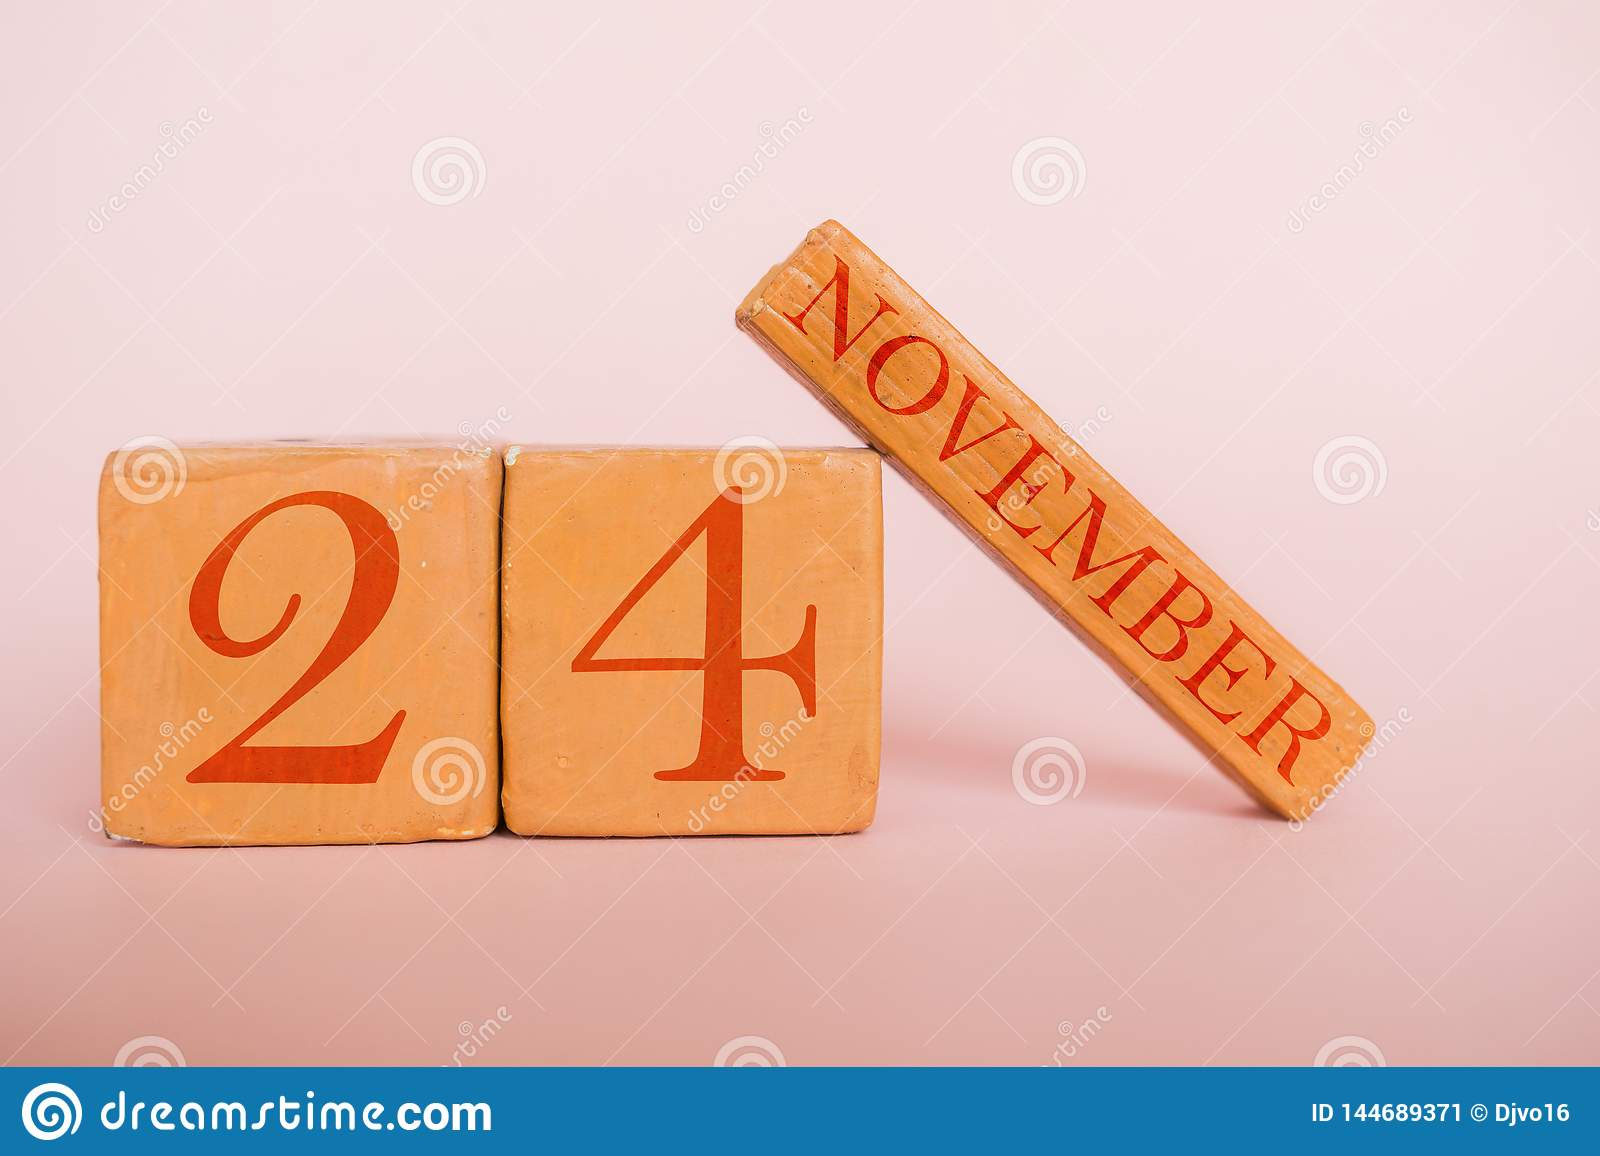 november 24th. Day 24 of month, handmade wood calendar  on modern color background. autumn month, day of the year concept